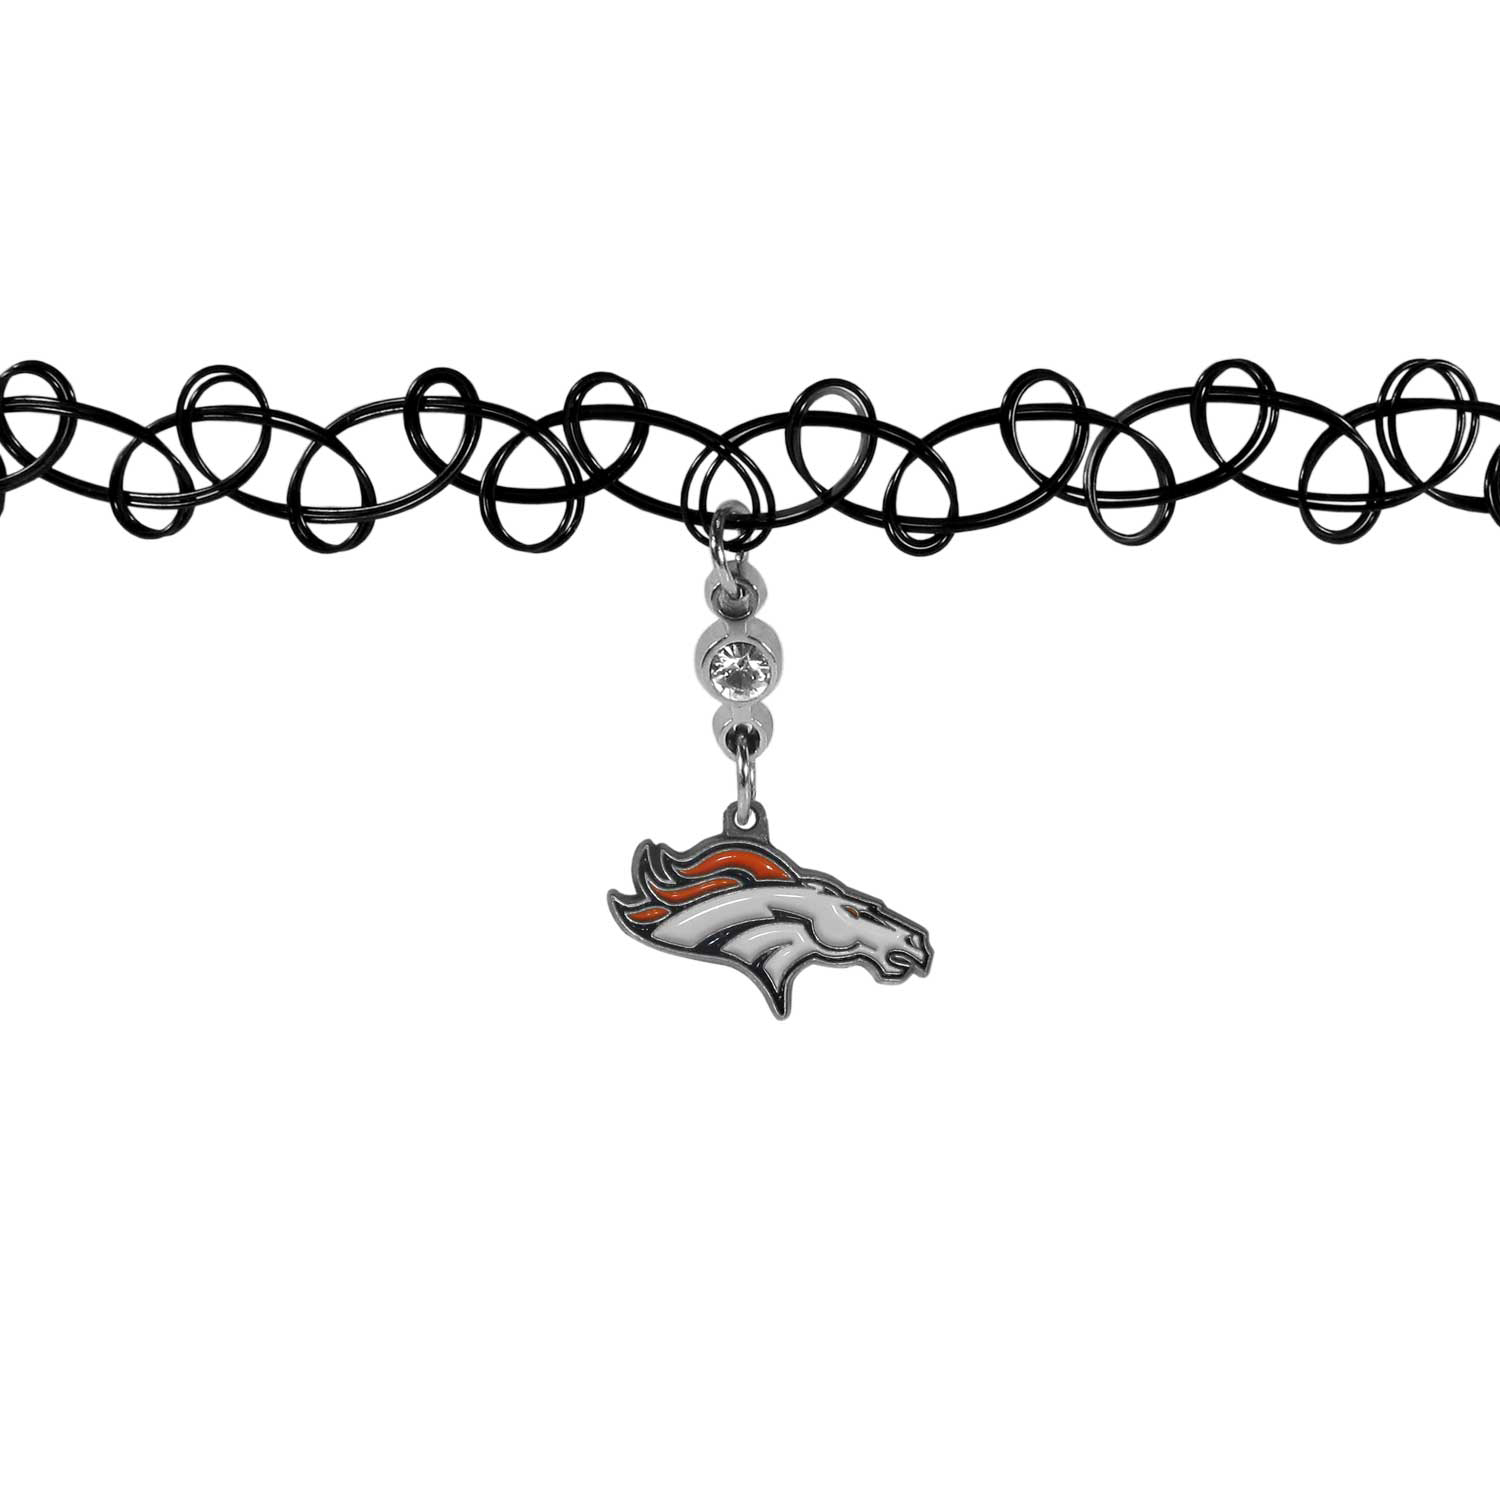 Denver Broncos Knotted Choker - This retro, knotted choker is a cool and unique piece of fan jewelry. The tattoo style choker features a high polish Denver Broncos charm with rhinestone accents.